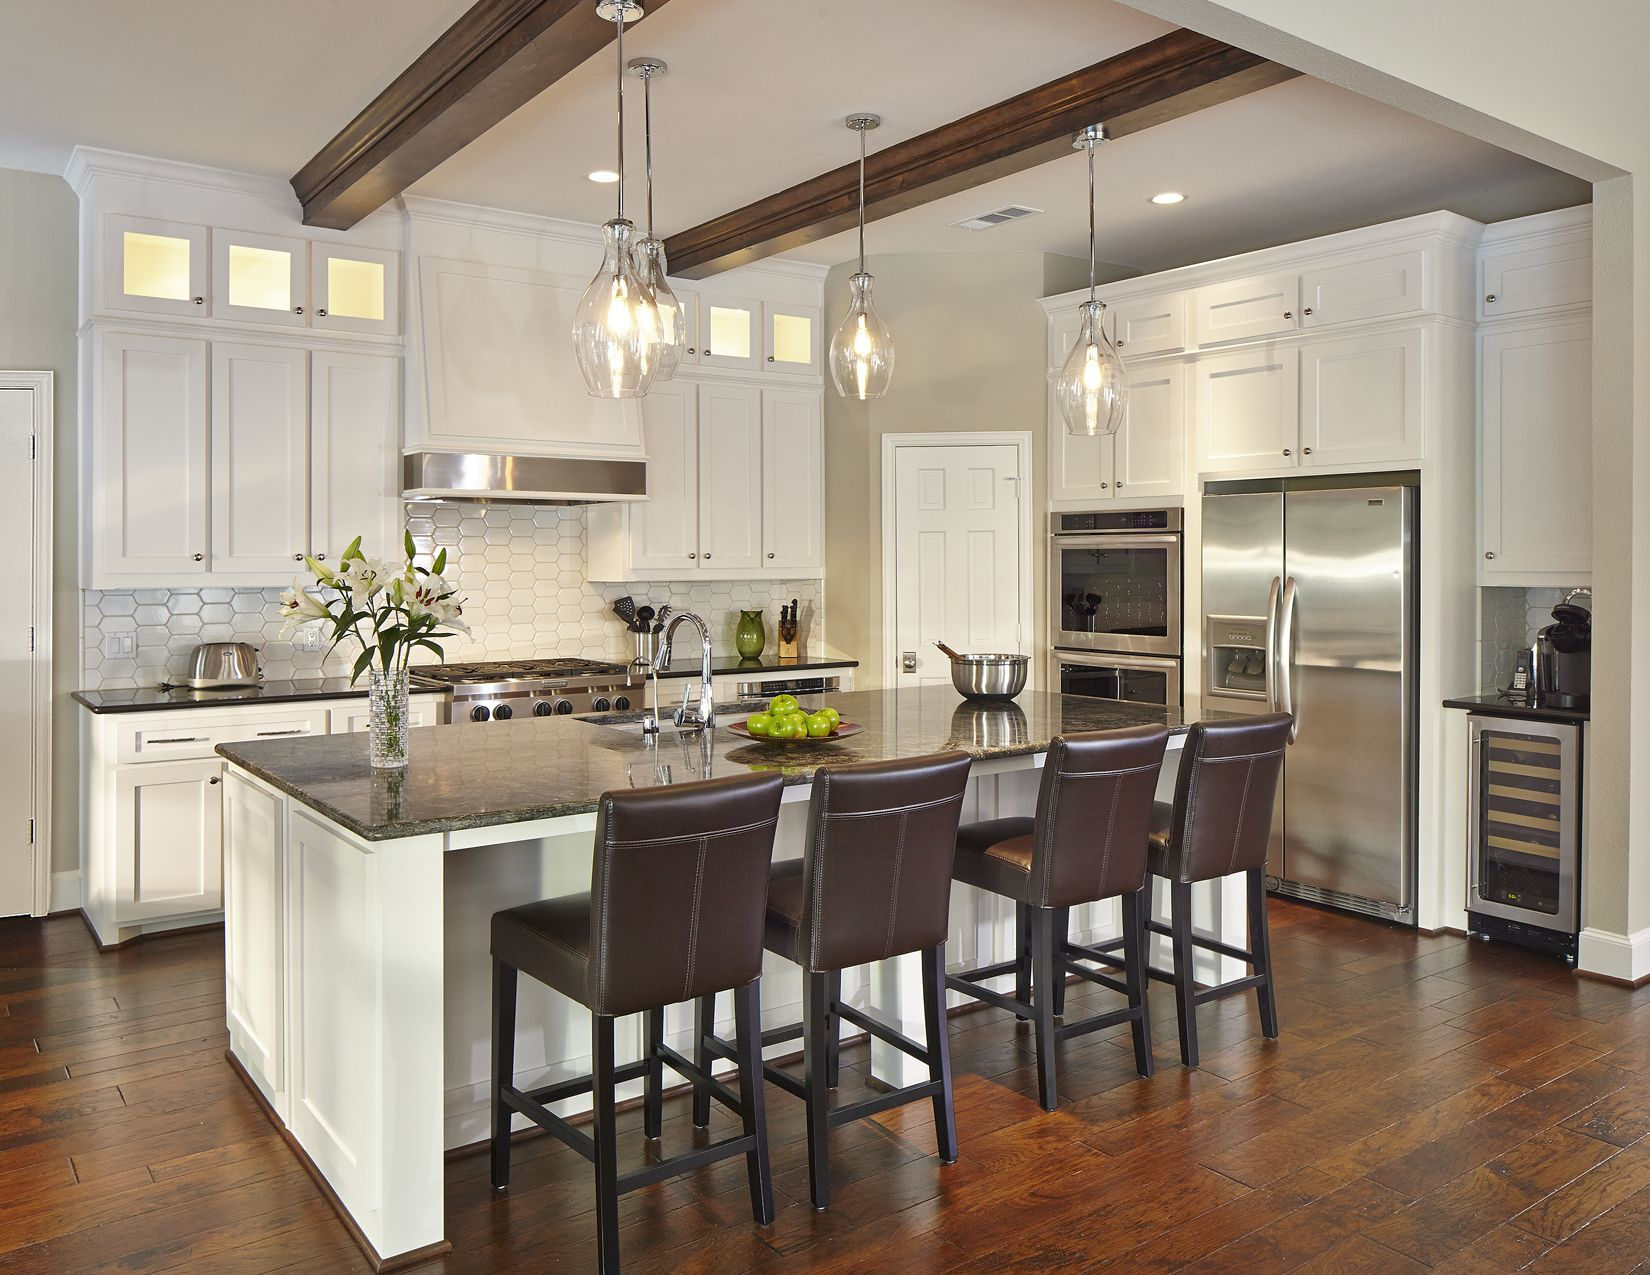 Dallas Kitchen Design Delectable Usi Remodeling  2014 Nari Dallas Contractor Of The Year  Kitchen Inspiration